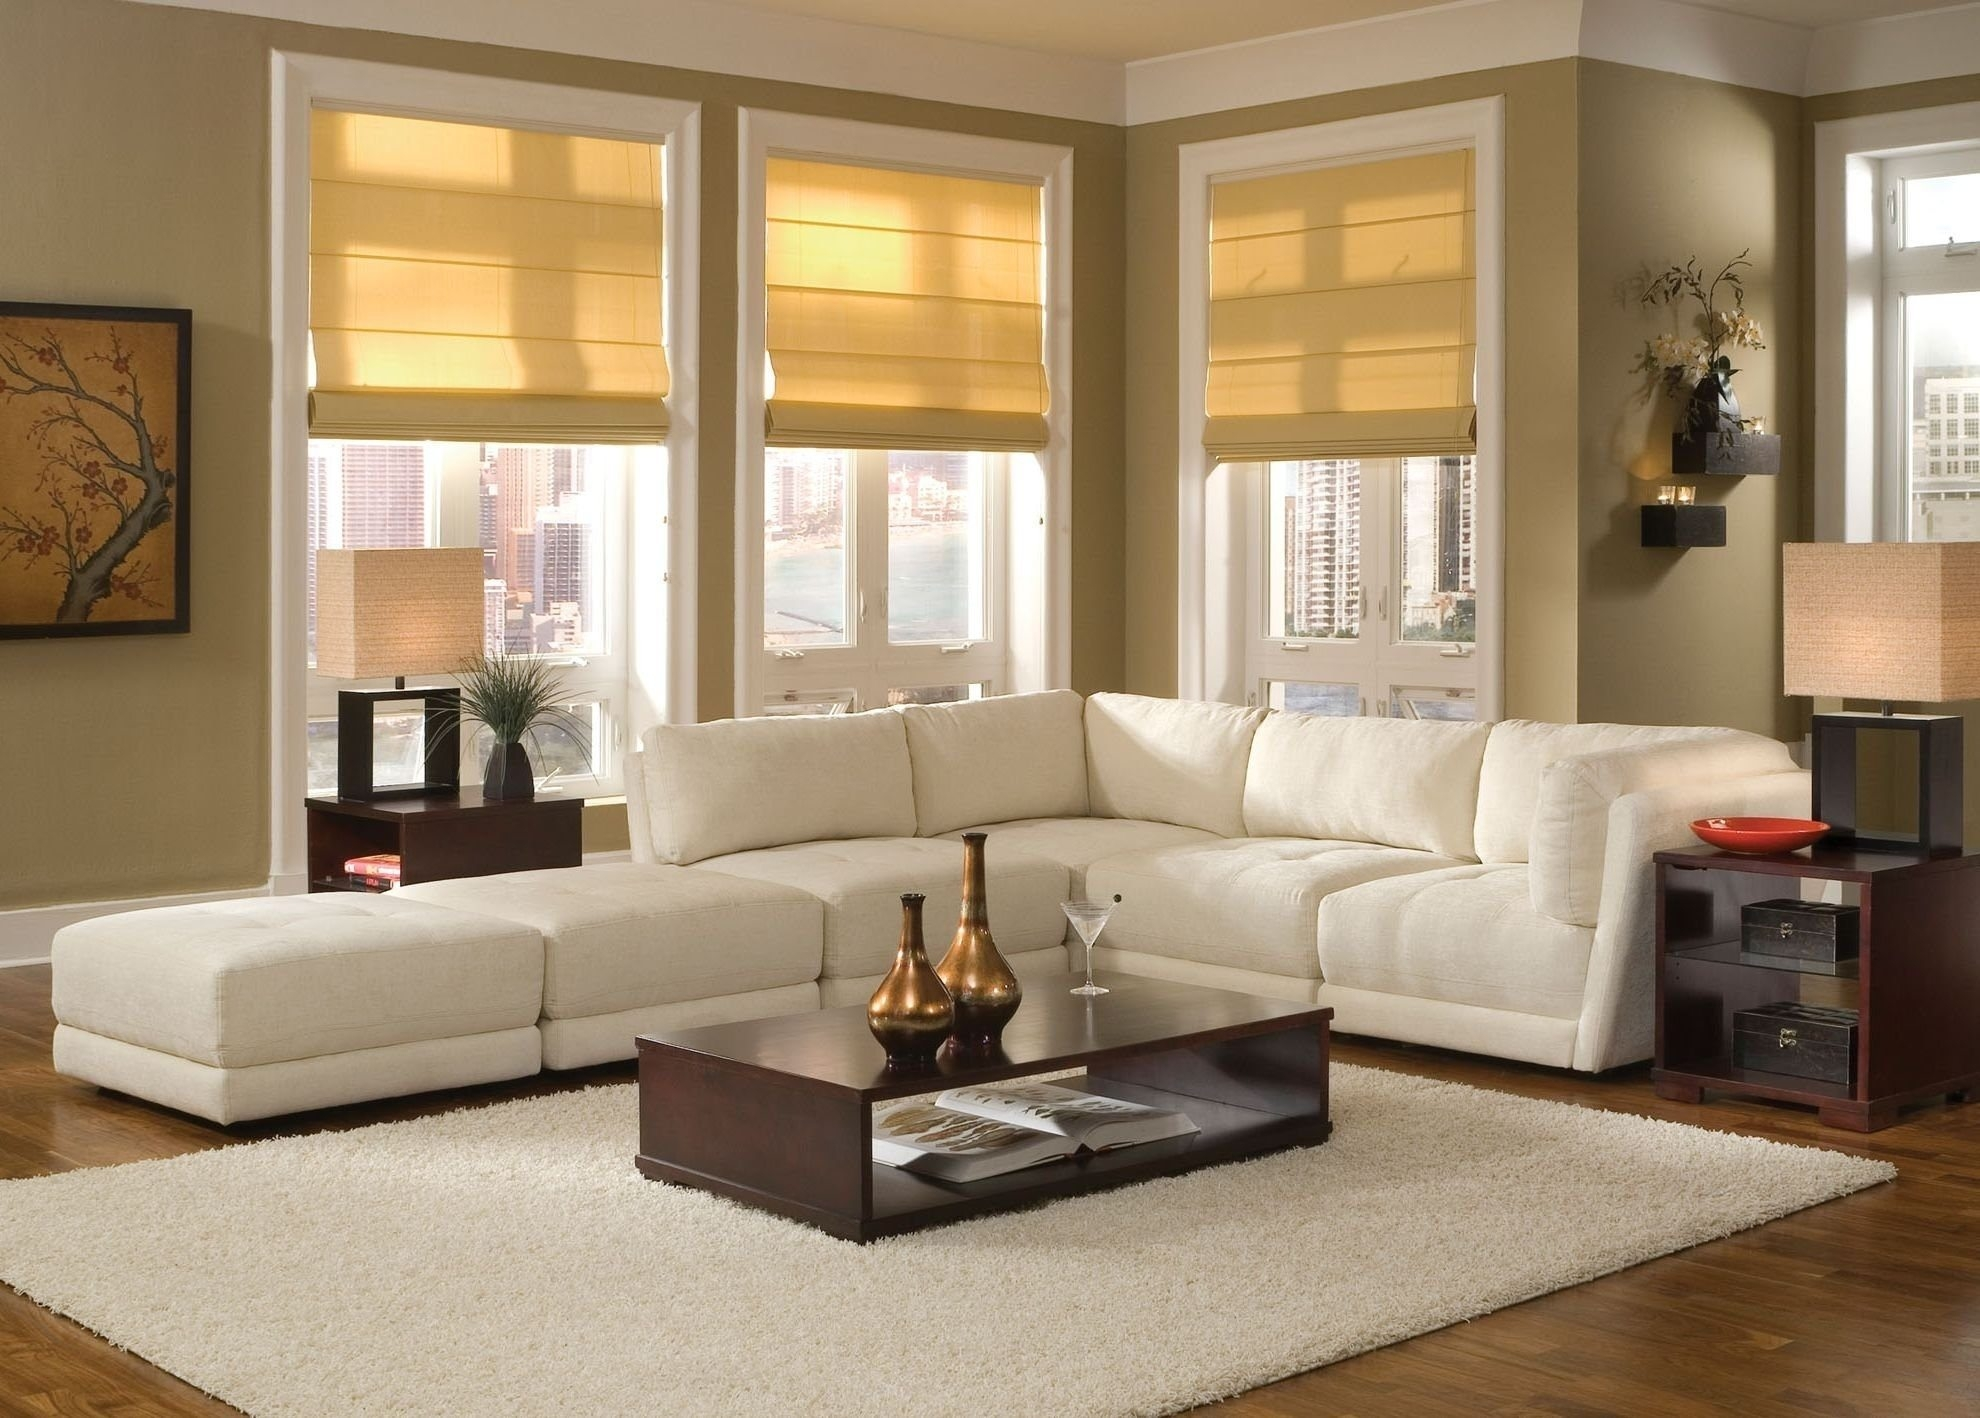 Glamorous Sectional Sofas For Small Living Rooms 85 On Albany In Albany Industries Sectional Sofa (